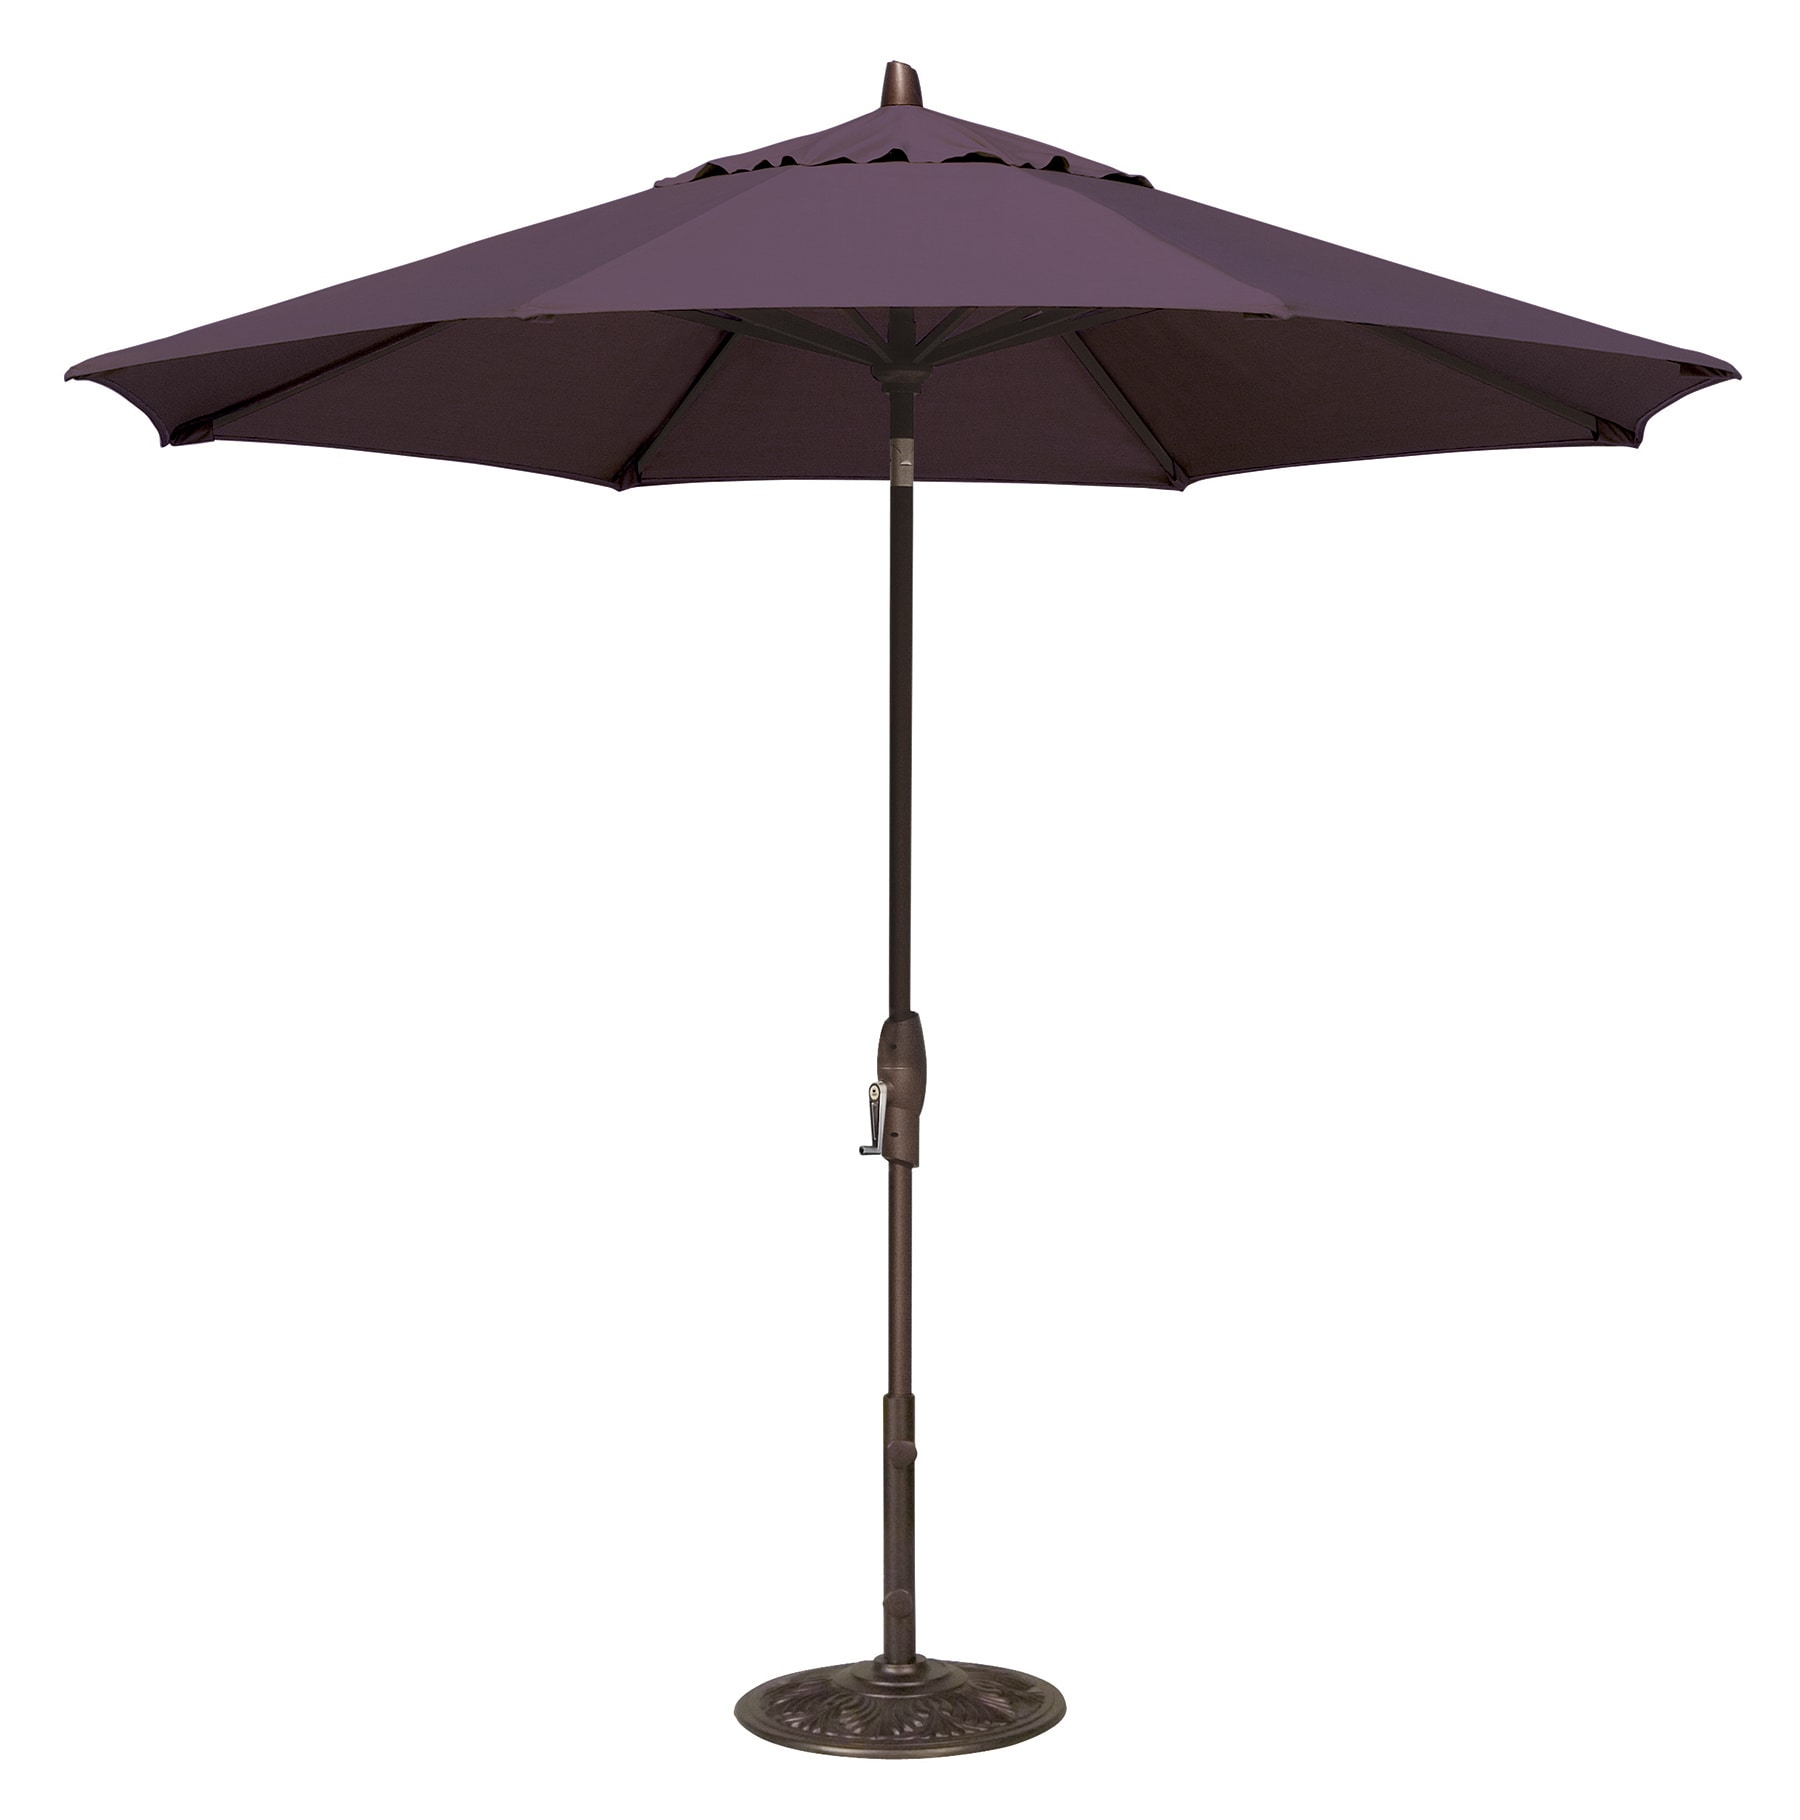 Vineyard 9' Umbrella